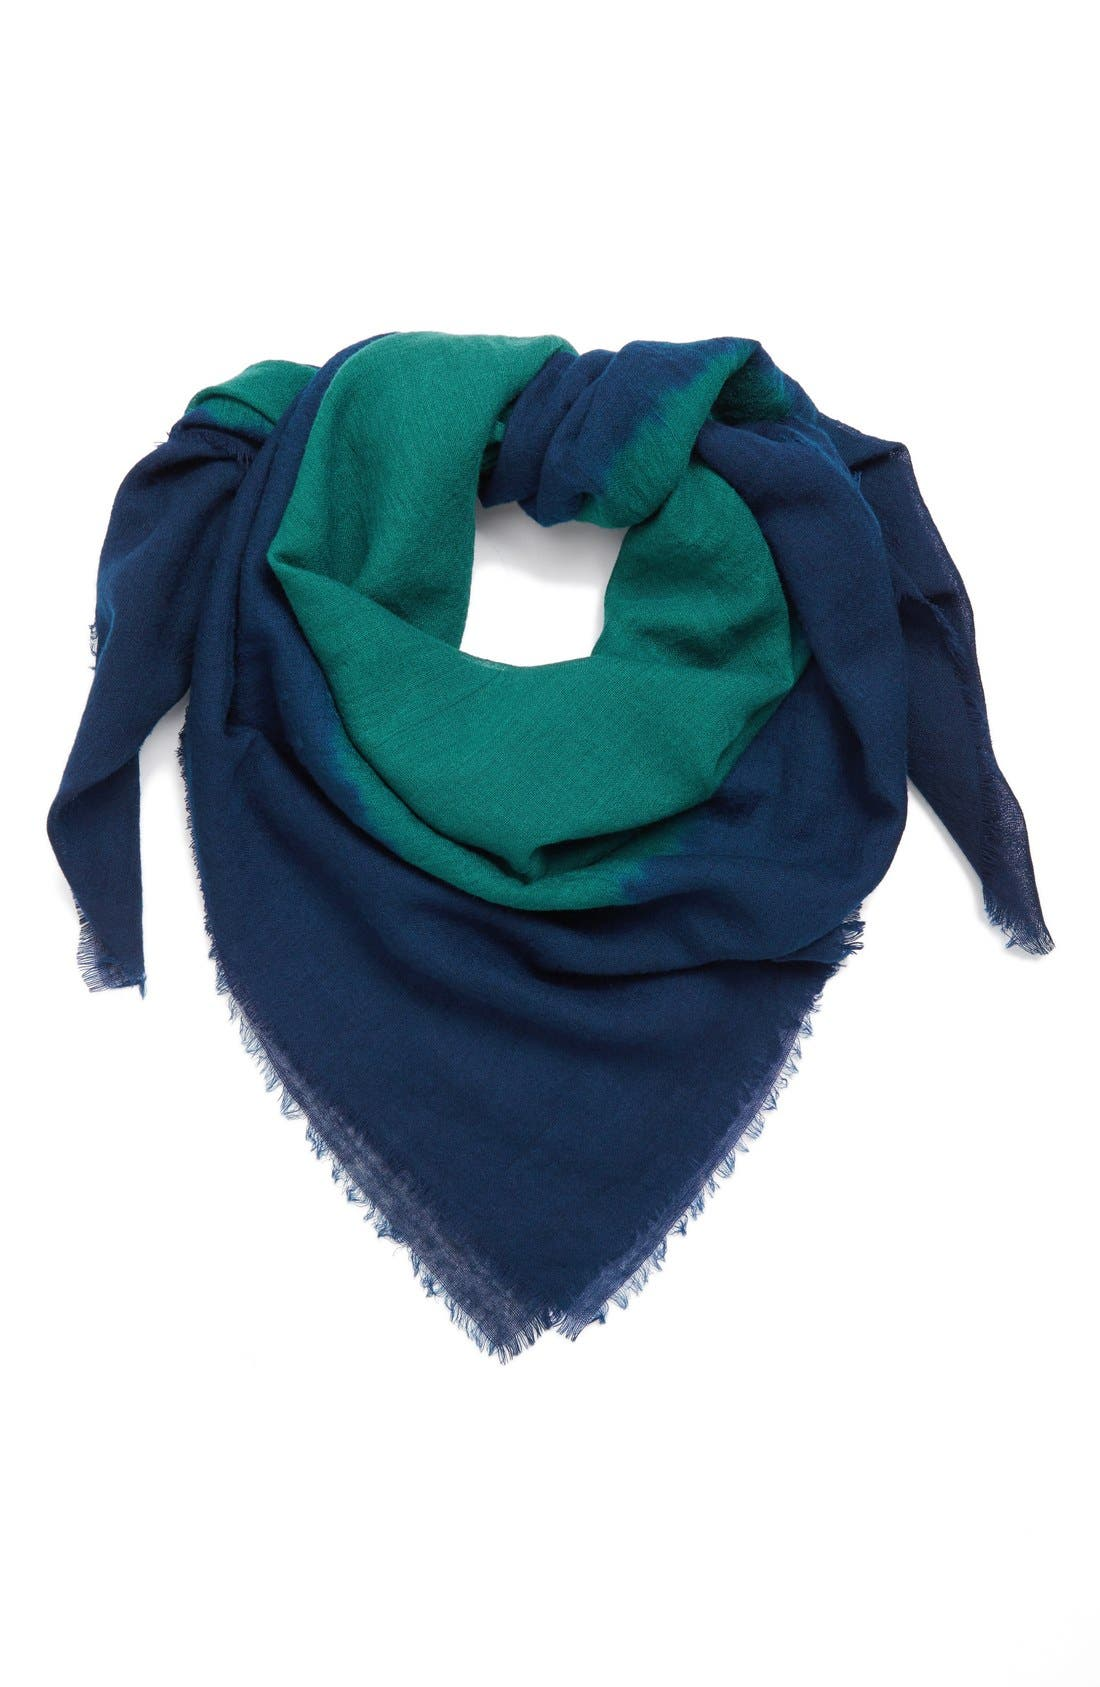 Main Image - Michael Stars' Dipped In' Wool Square Scarf